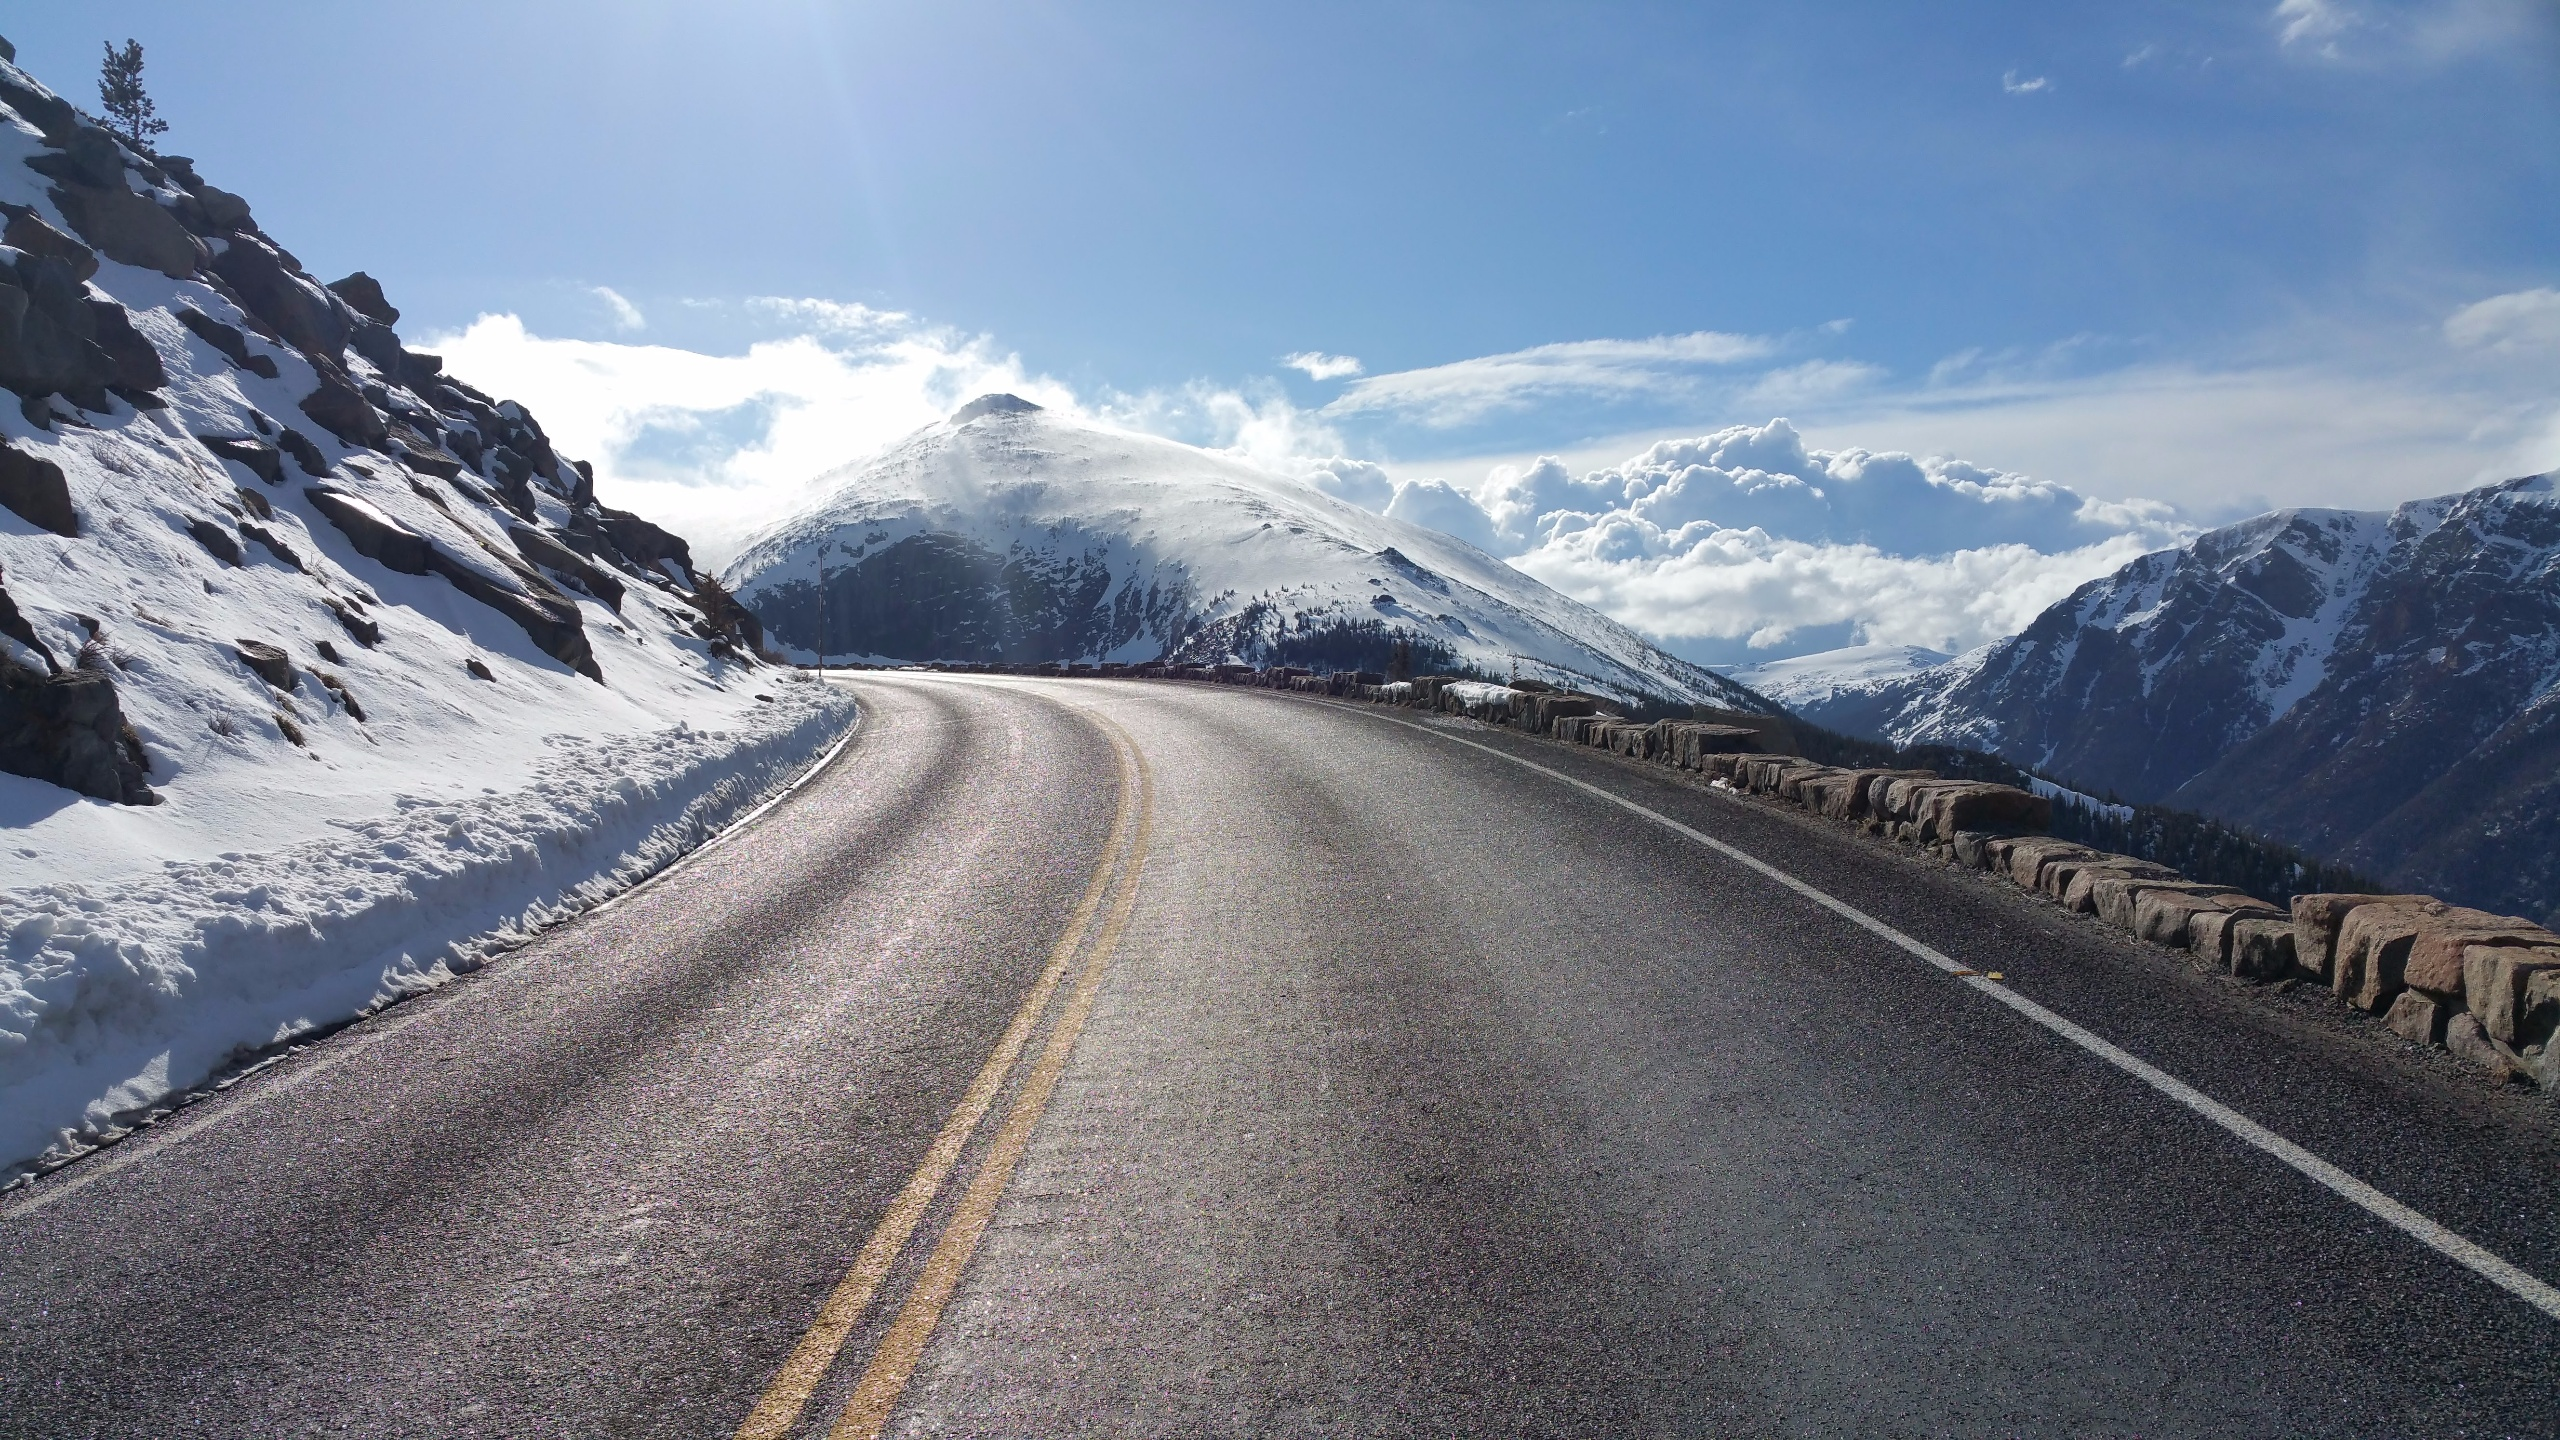 Beautiful Mountain Road Hd Nature 4k Wallpapers Images